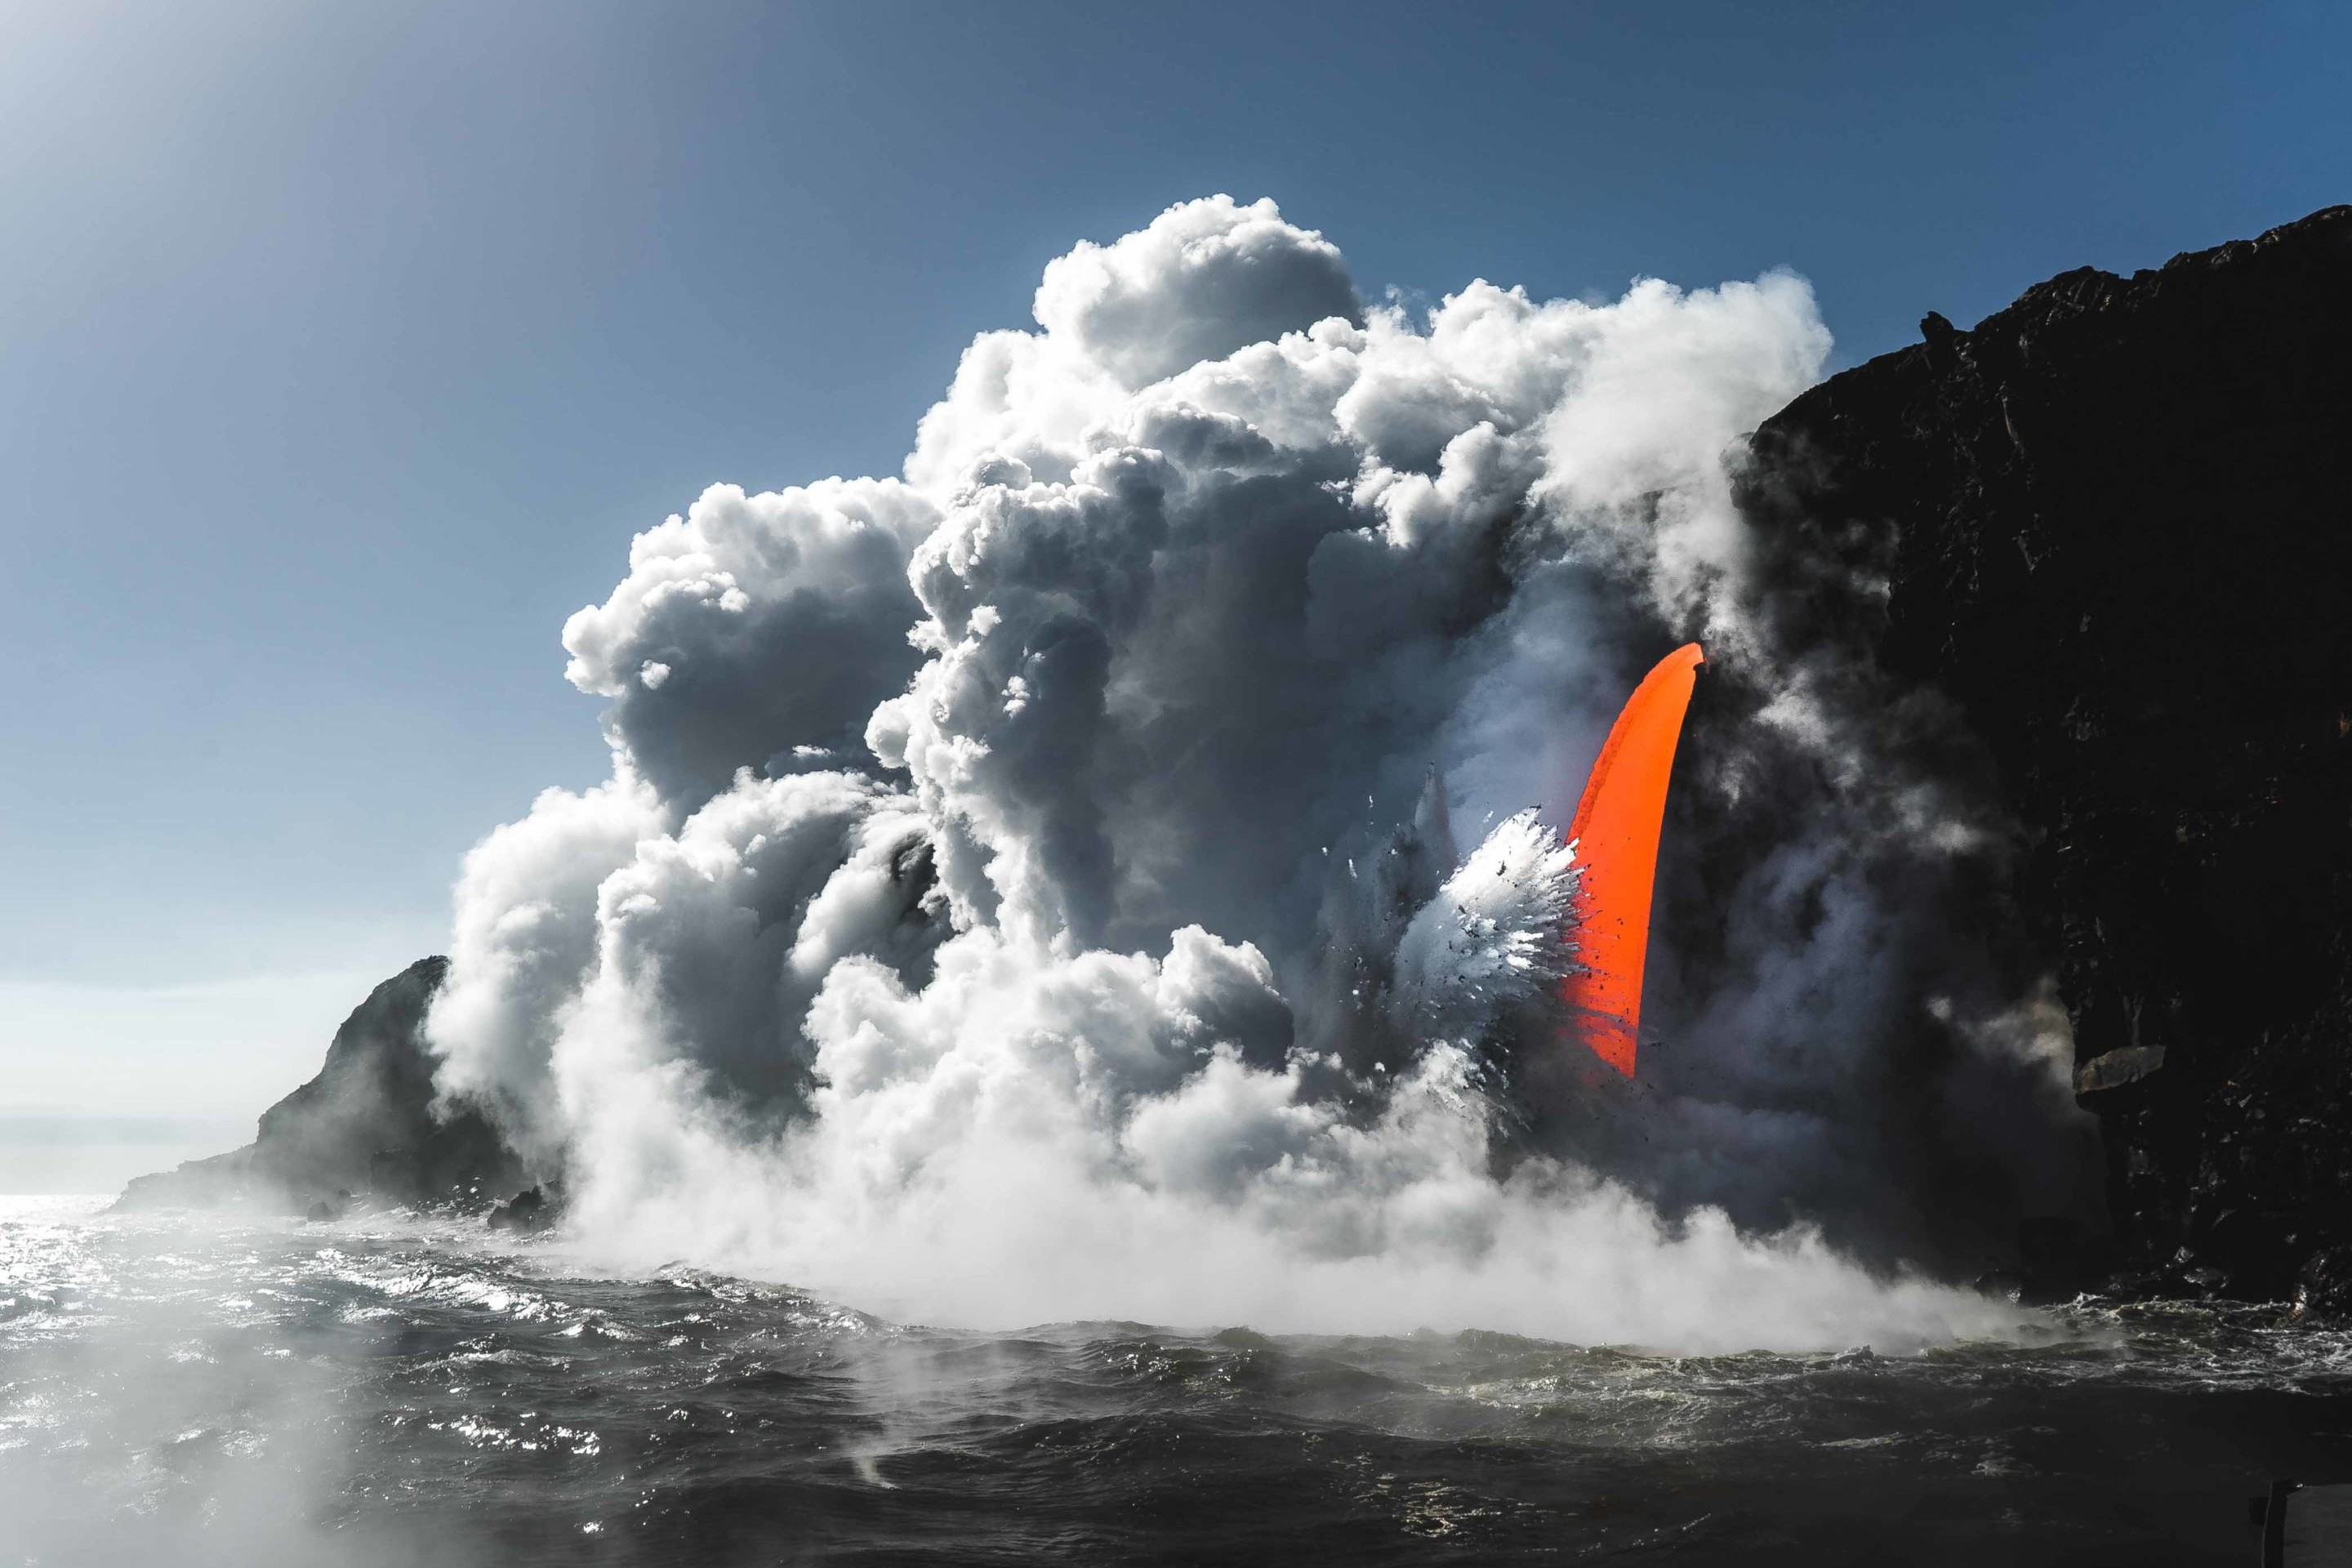 A fire hose lava spout in Hawaii Volcanoes National Park viewed from a boat